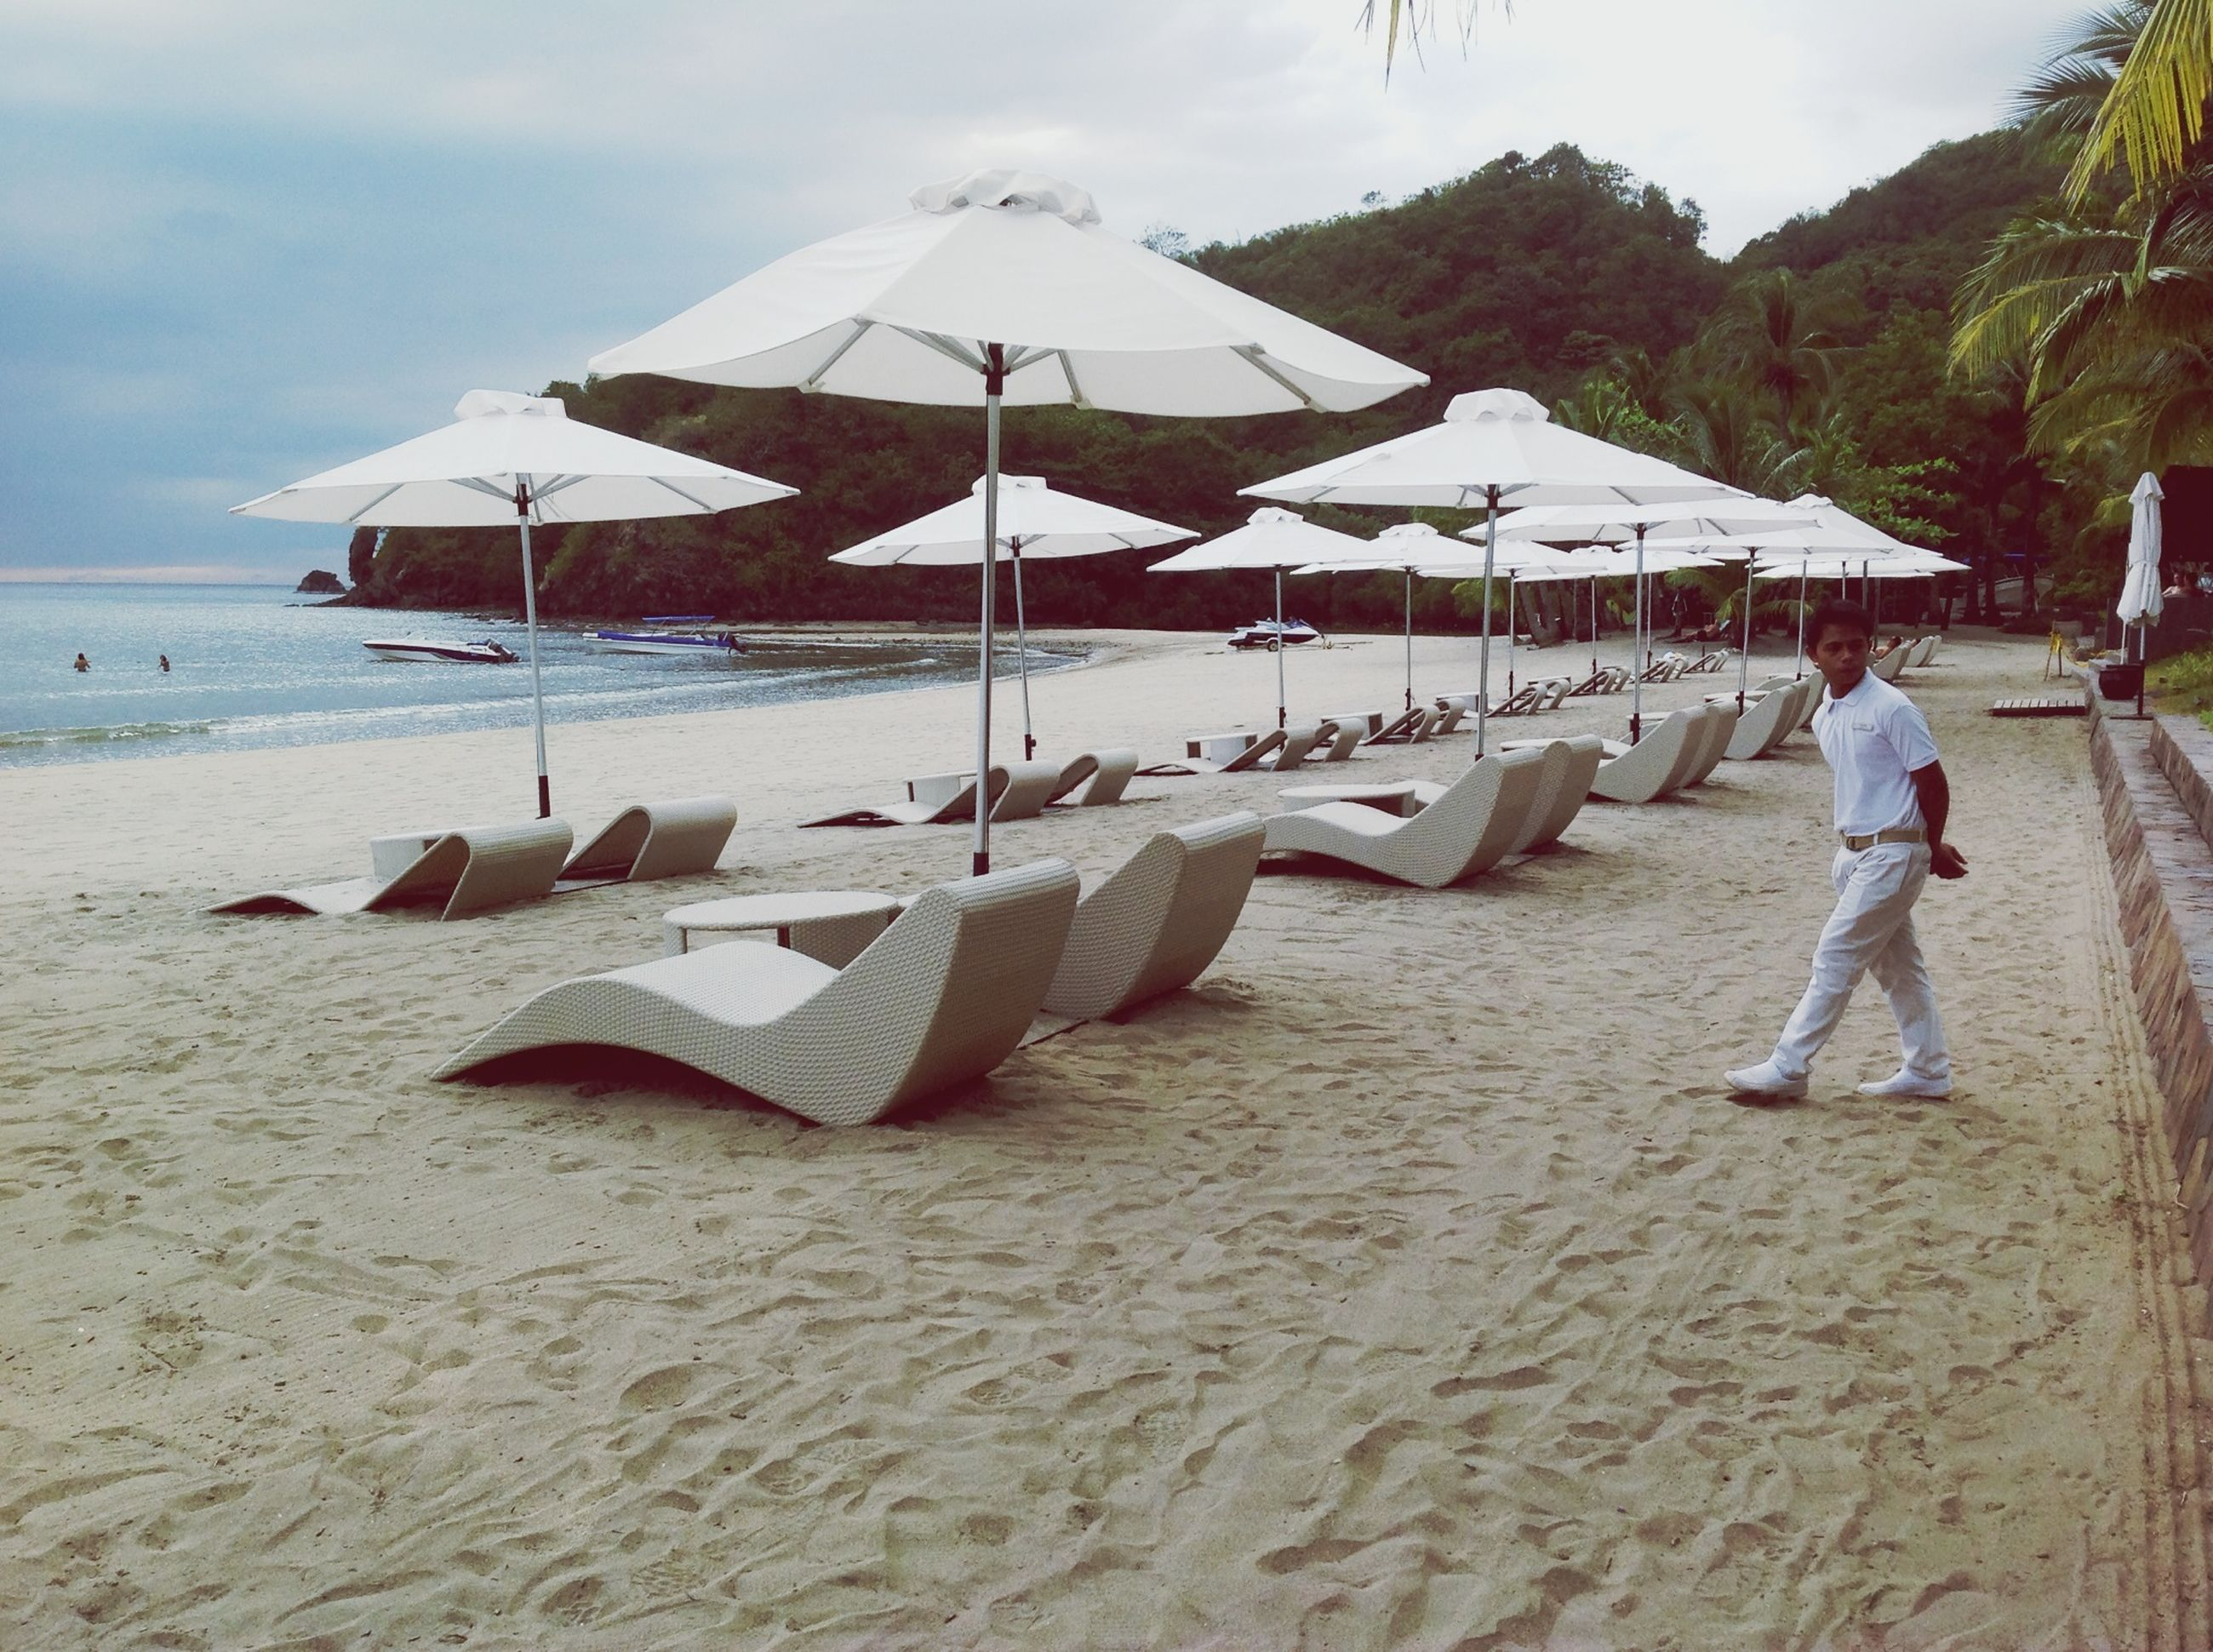 beach, sand, shore, sky, water, sea, mountain, tranquility, vacations, tranquil scene, nature, incidental people, day, scenics, outdoors, beach umbrella, leisure activity, beauty in nature, travel destinations